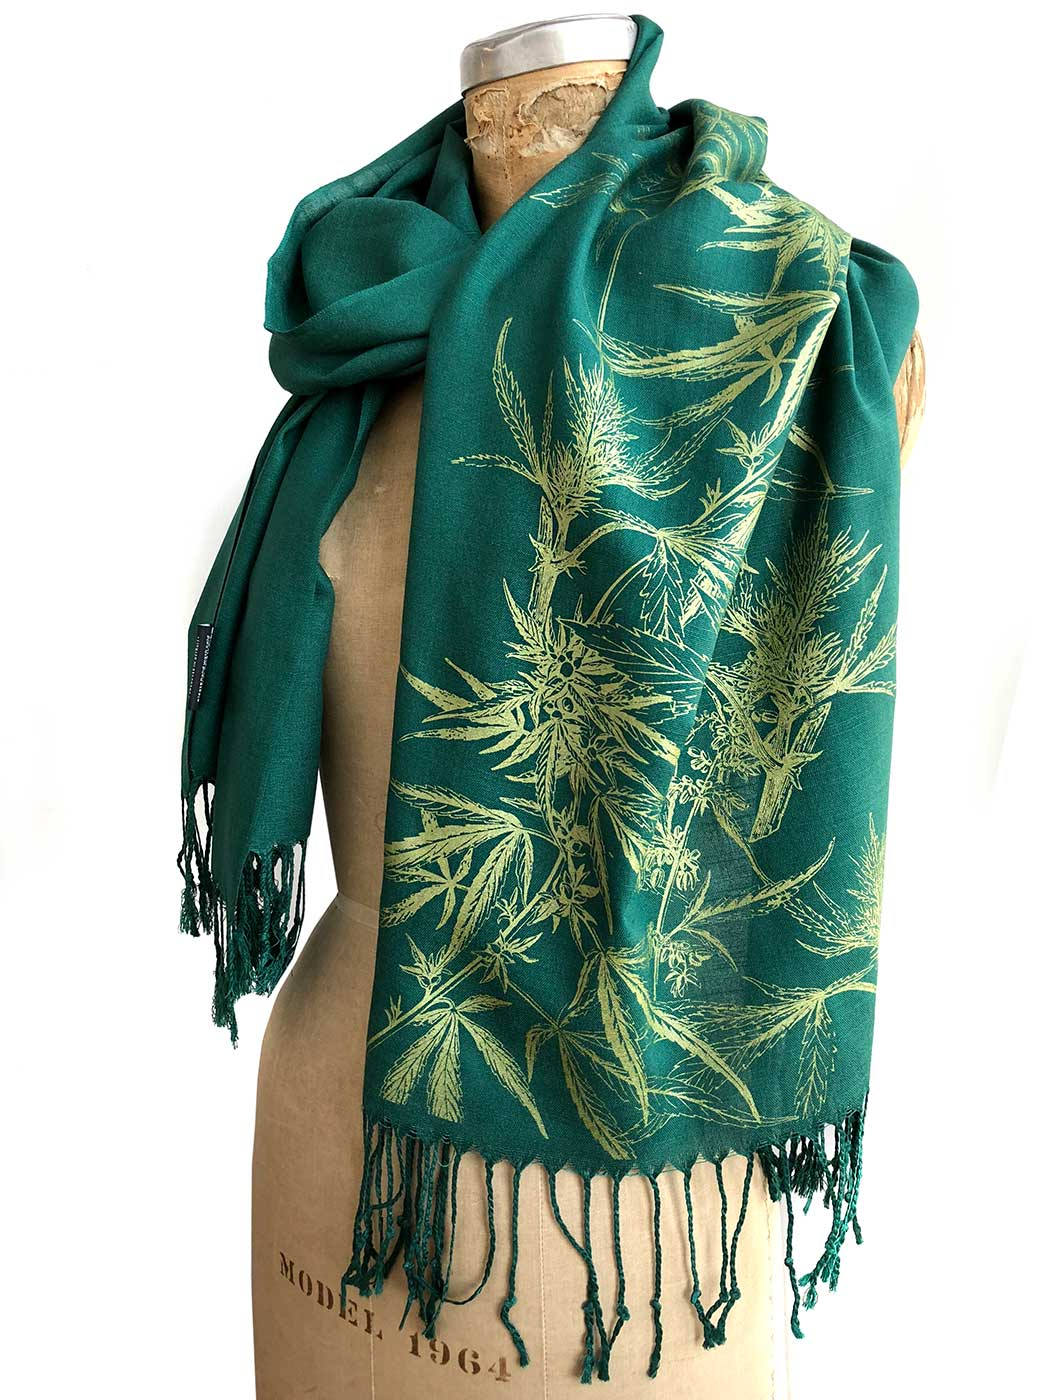 Printed Scarves Pashmina Wraps For Weddings Everyday Of Circuit Board Illustration A Green Cannabis Leaf Scarf Linen Weave